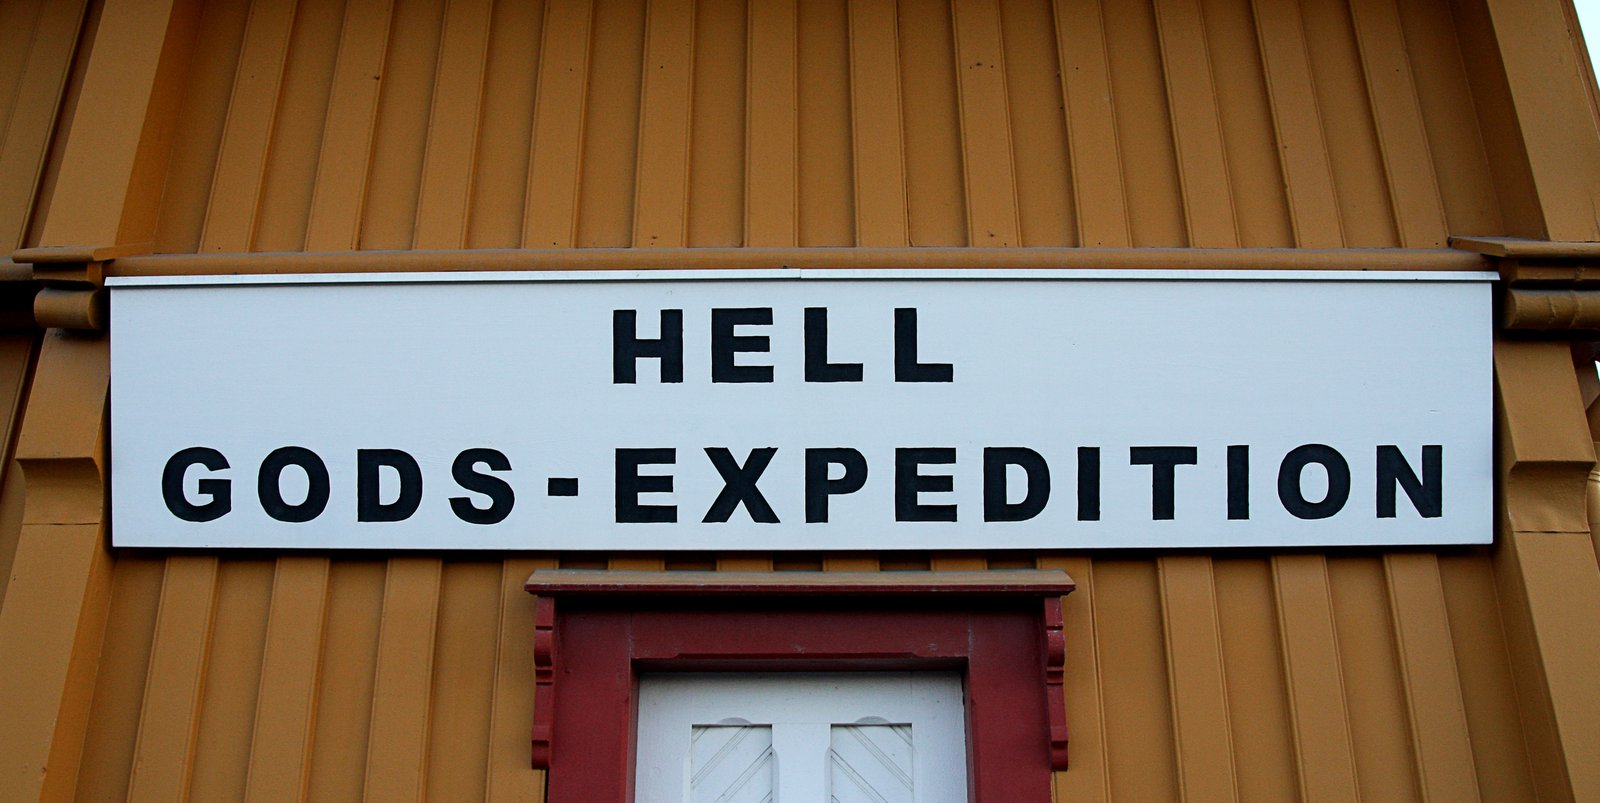 Hell Gods Expedition